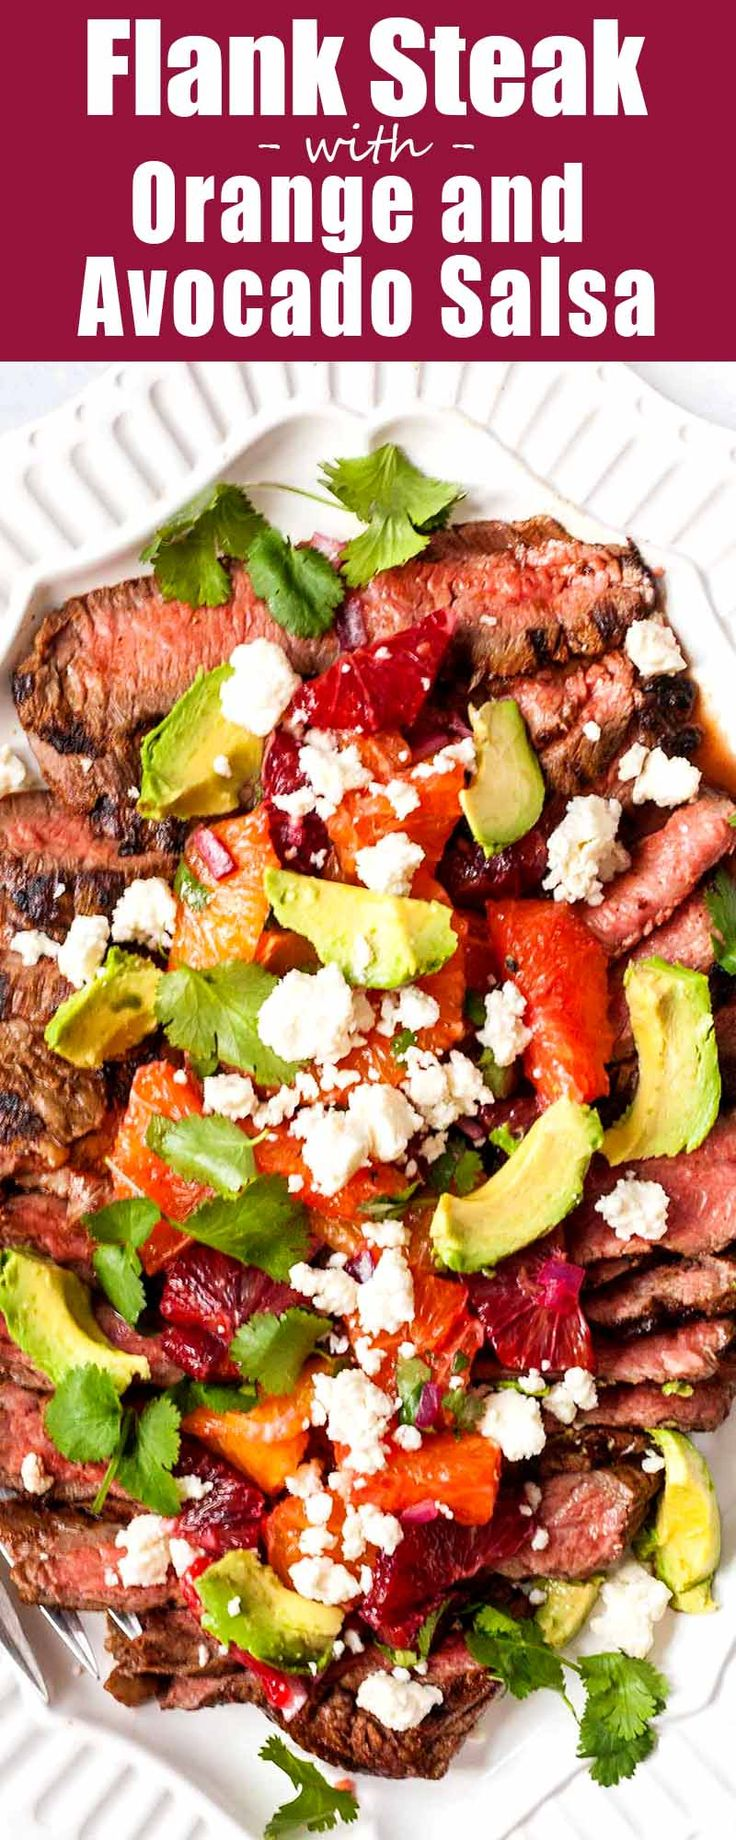 Switch up your dinner routine this flank steak and citrus-avocado salsa! It's easy to make on the stovetop or on a grill, and feeds the whole family. Serve as tacos or over salad greens. #flanksteak #steak #tacos #TacoTuesday